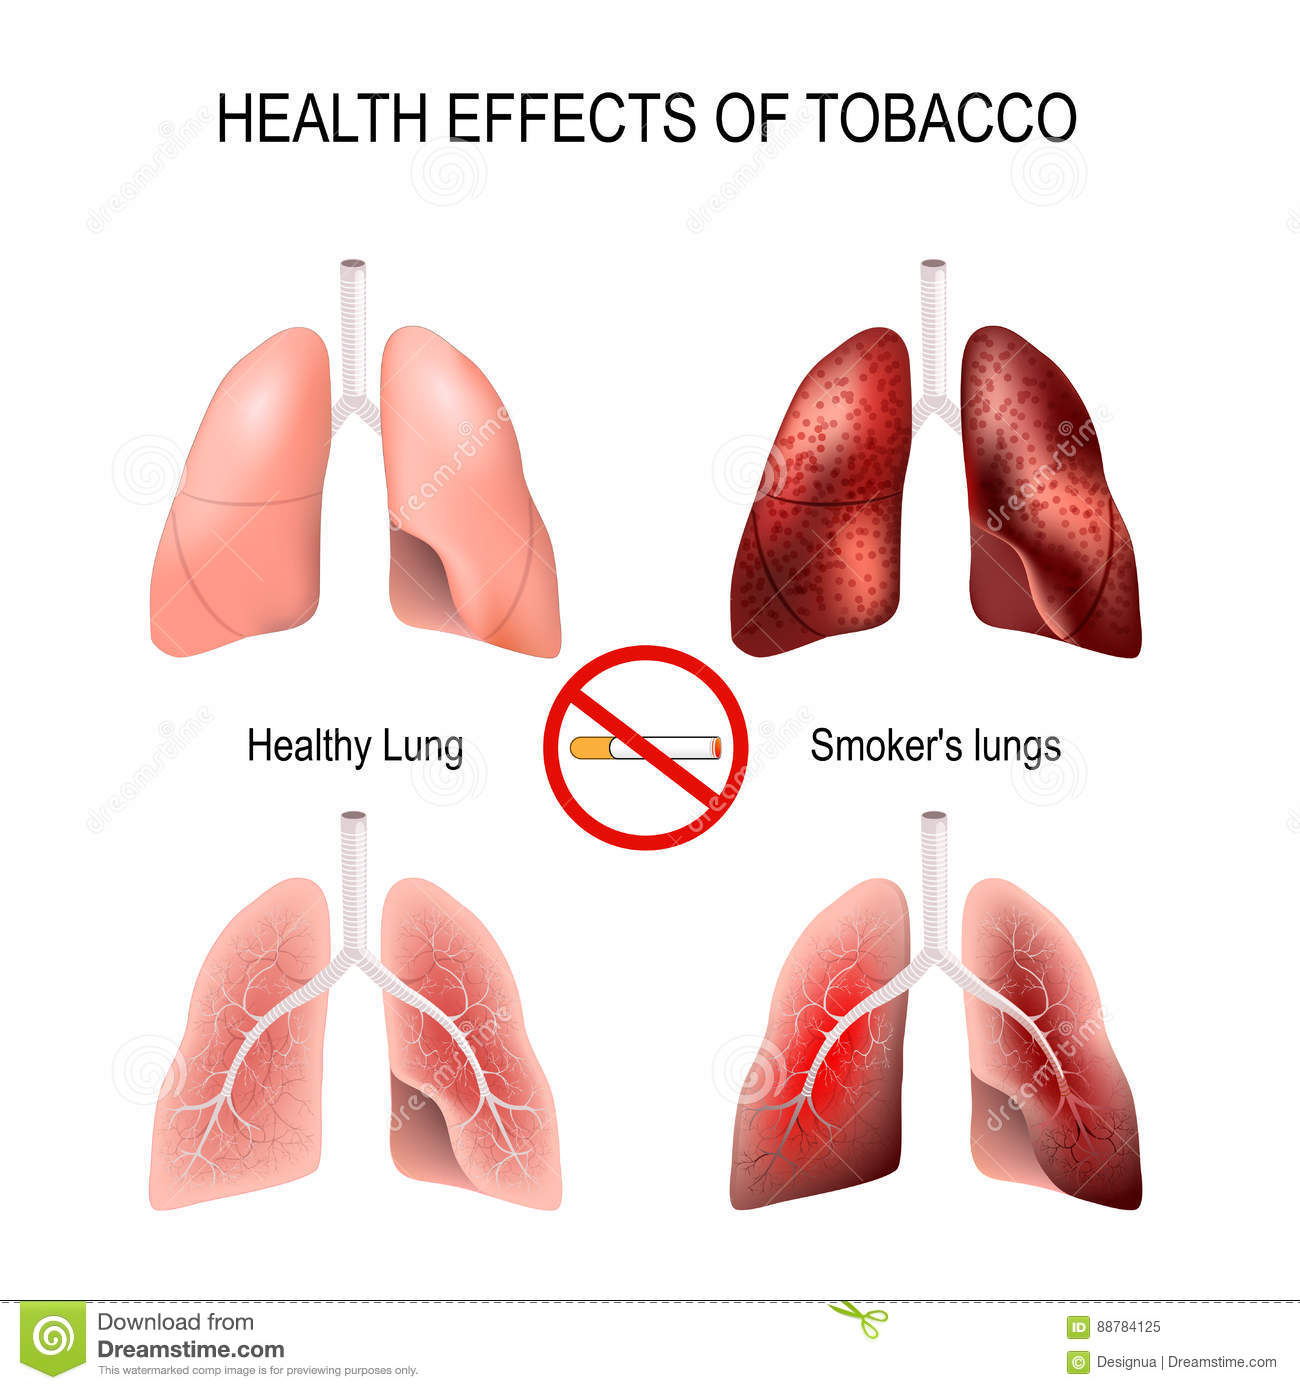 An analysis of the harmful effects of smoking on the human health